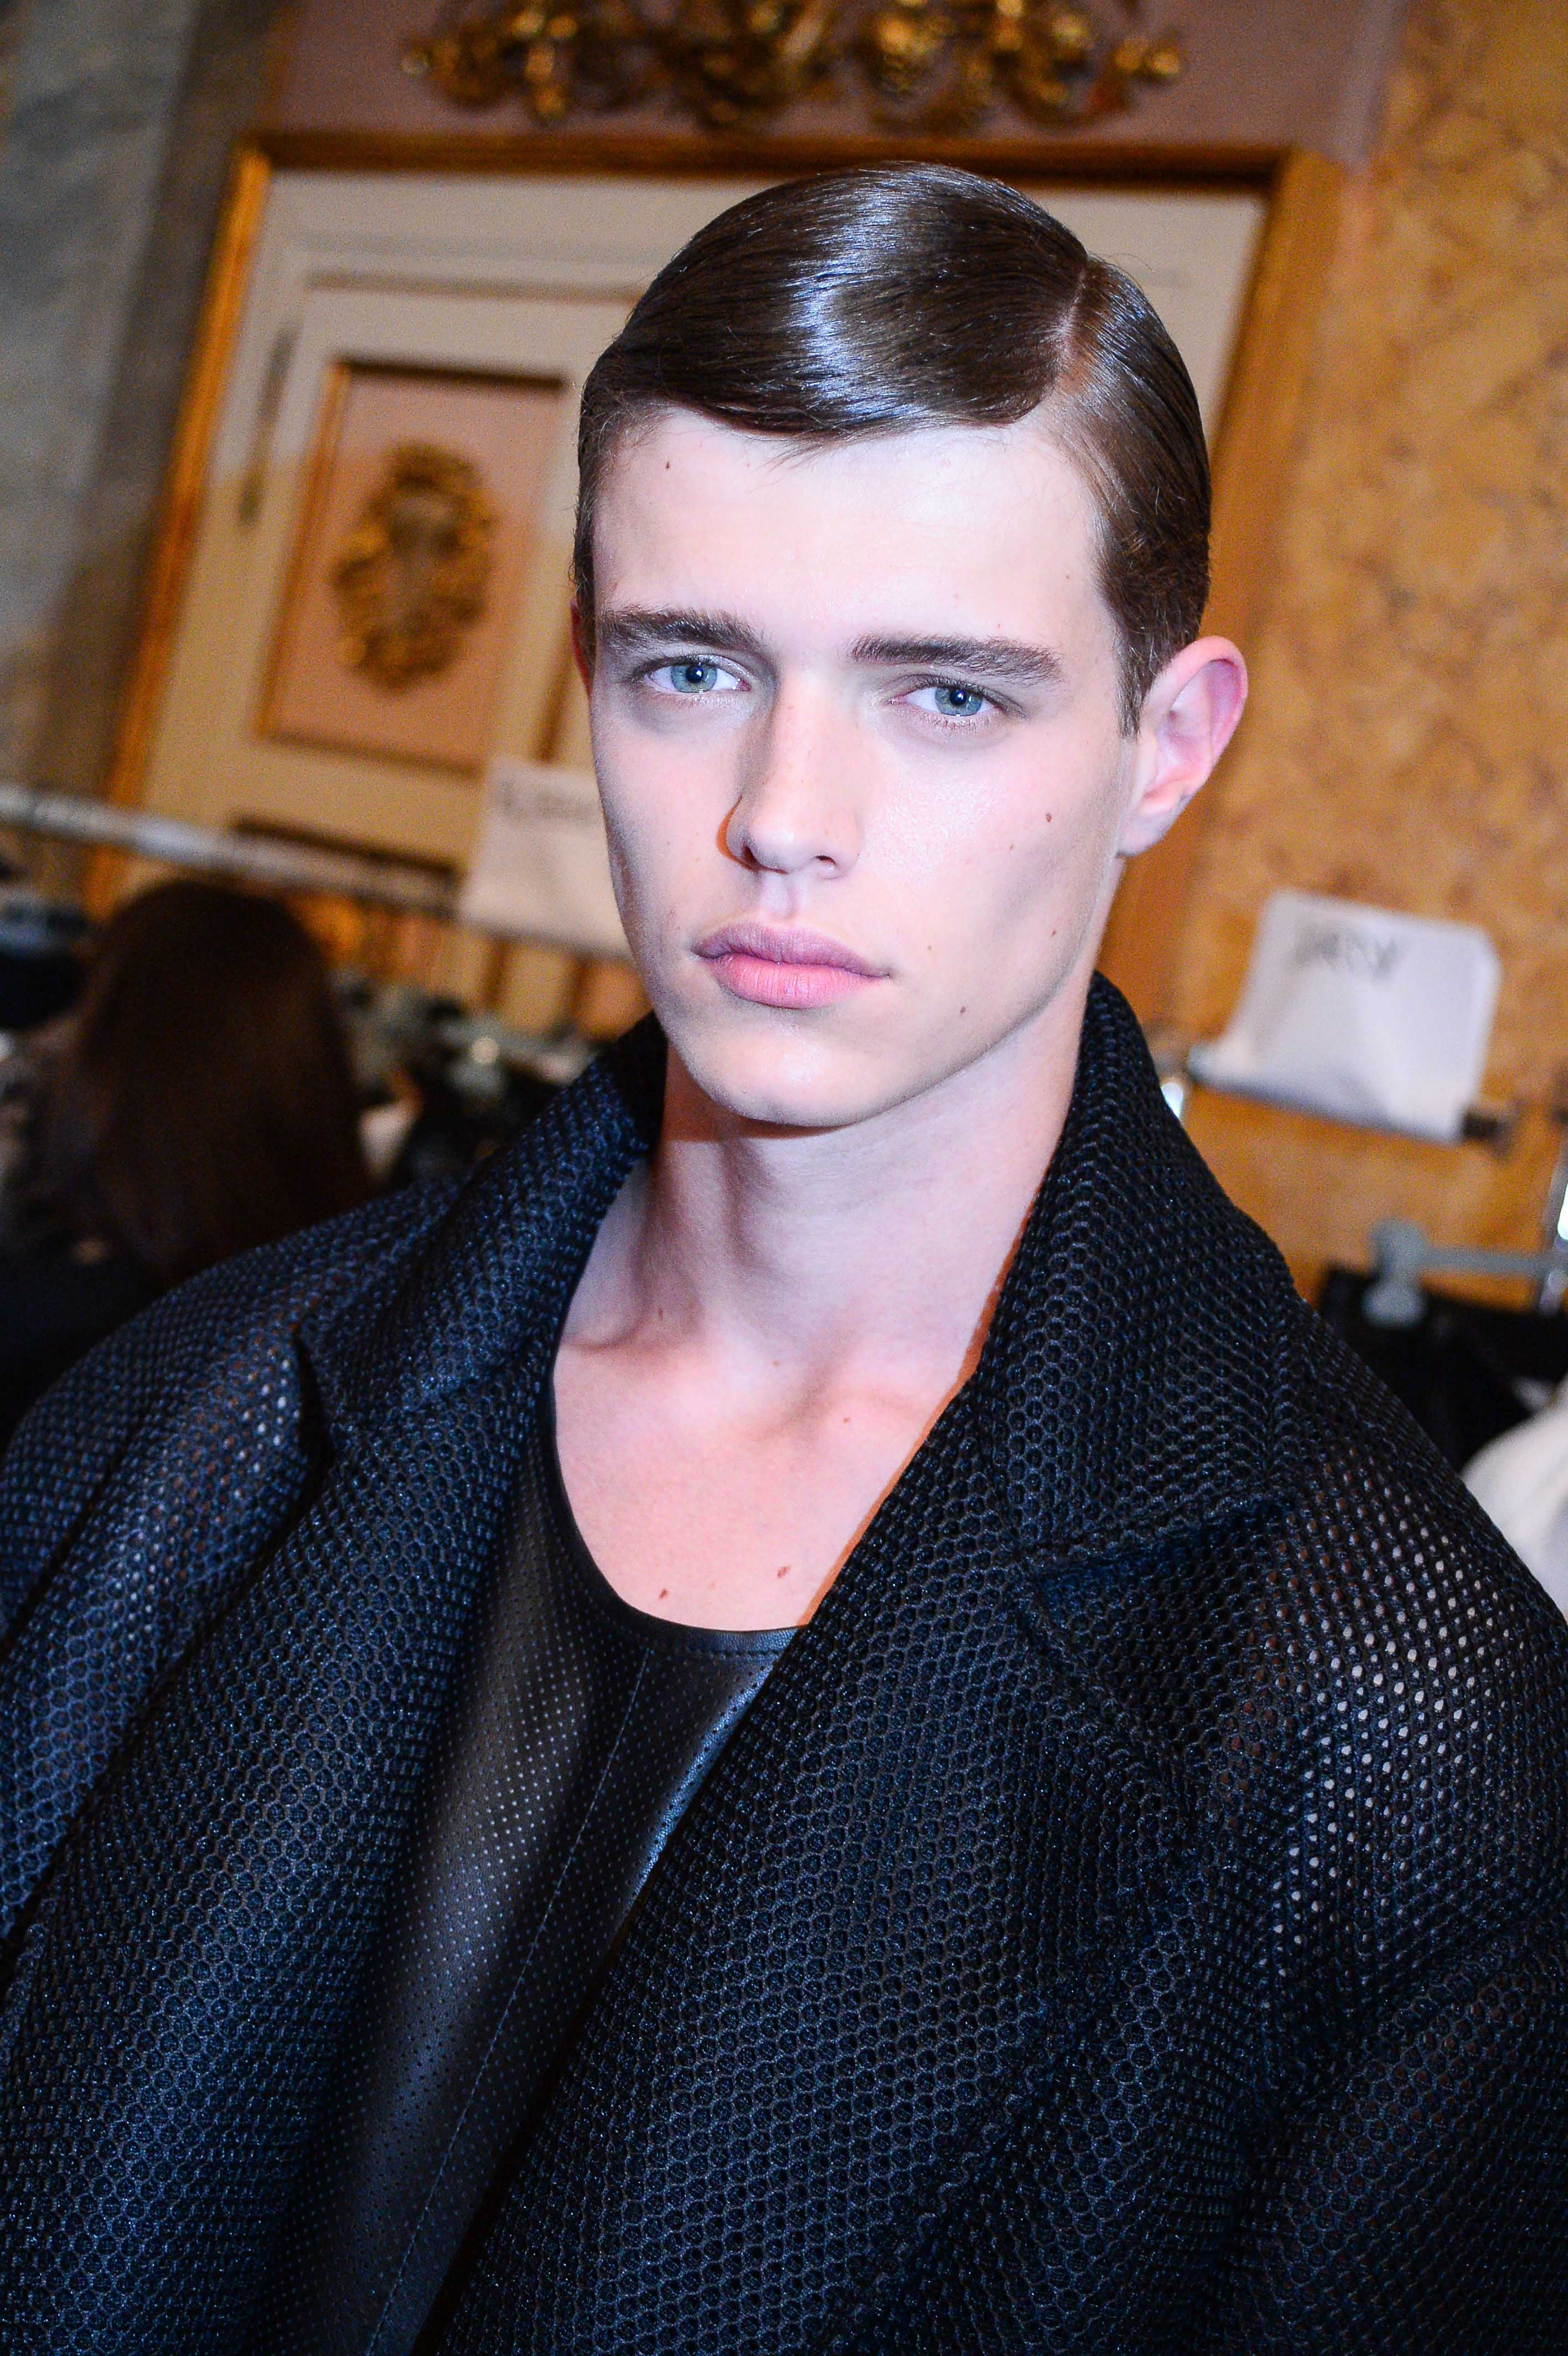 brunette male model backstage with slick comb over hair